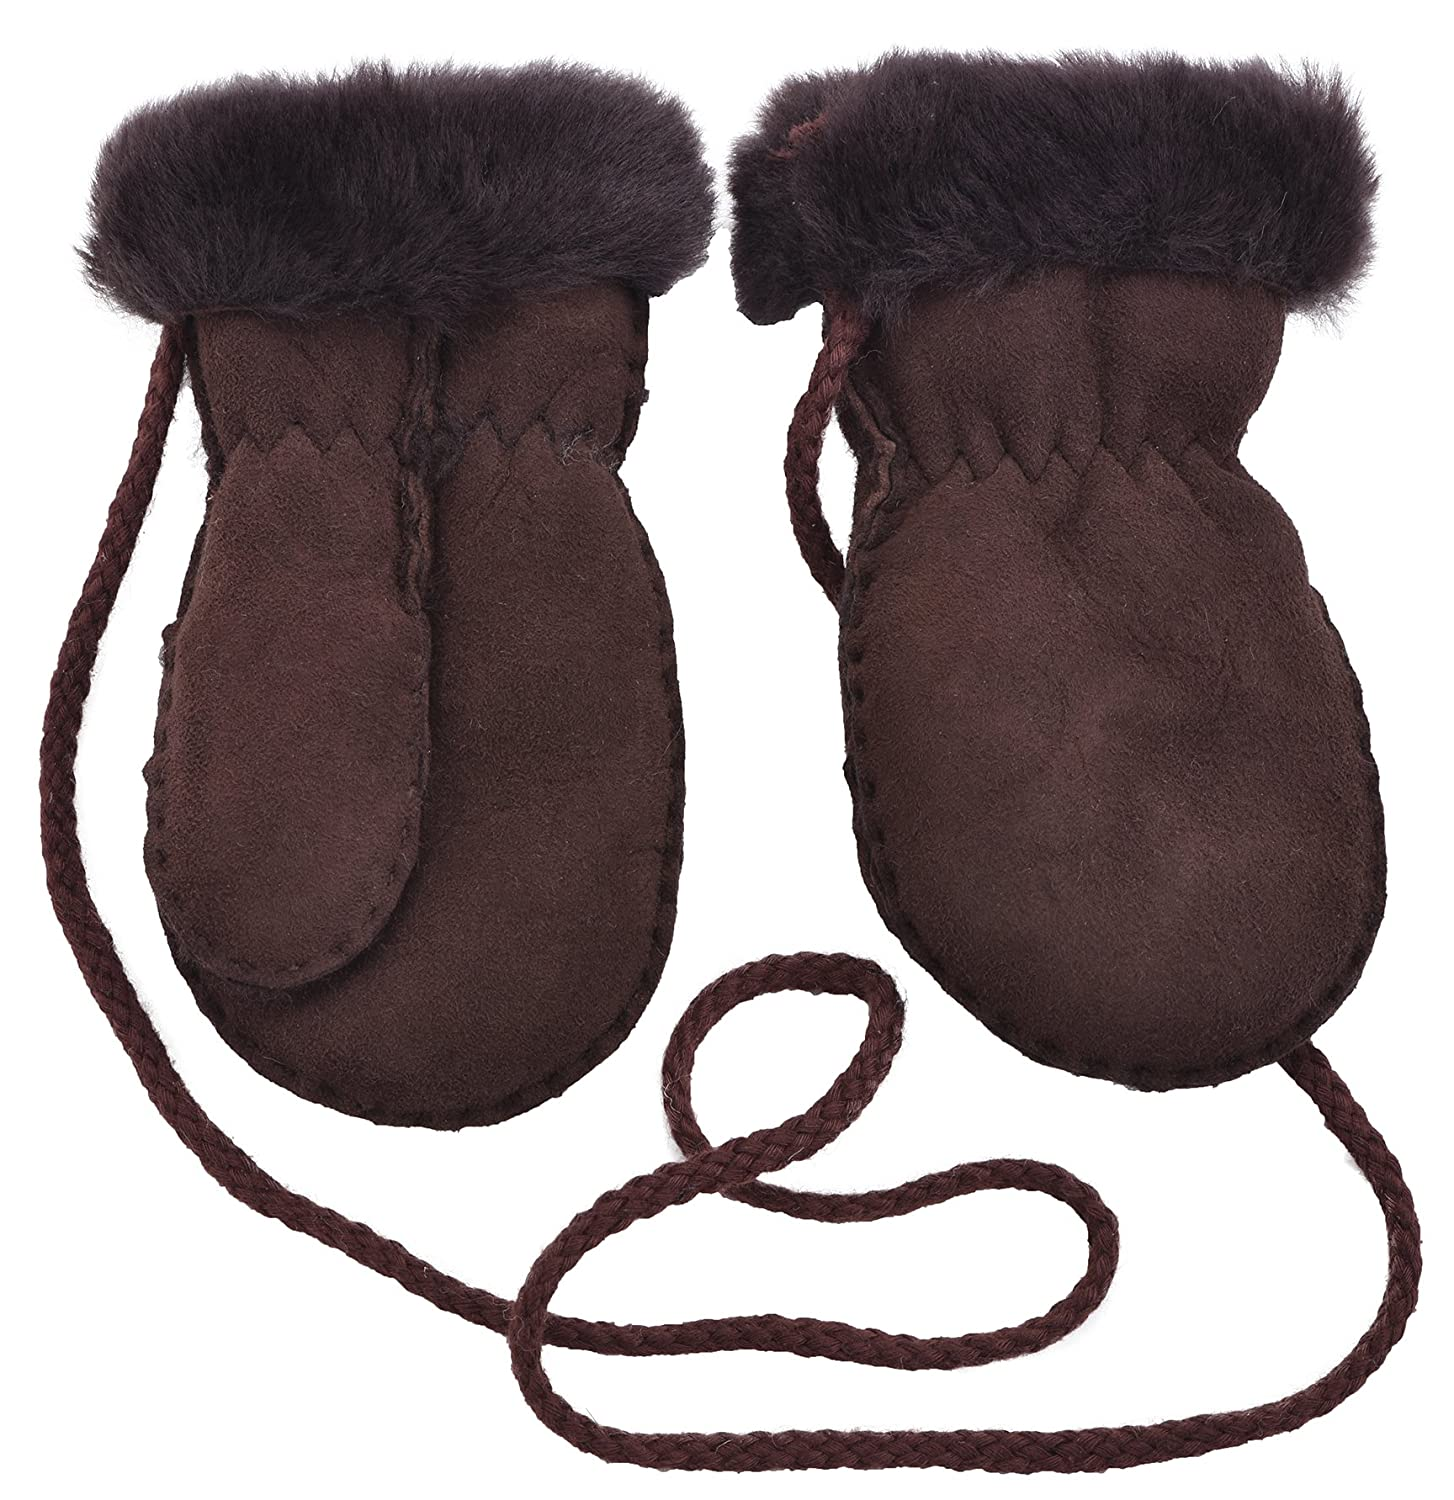 Lambland Childrens Genuine Sheepskin Lined Thumb Mittens with 'Keep Safe' Cord